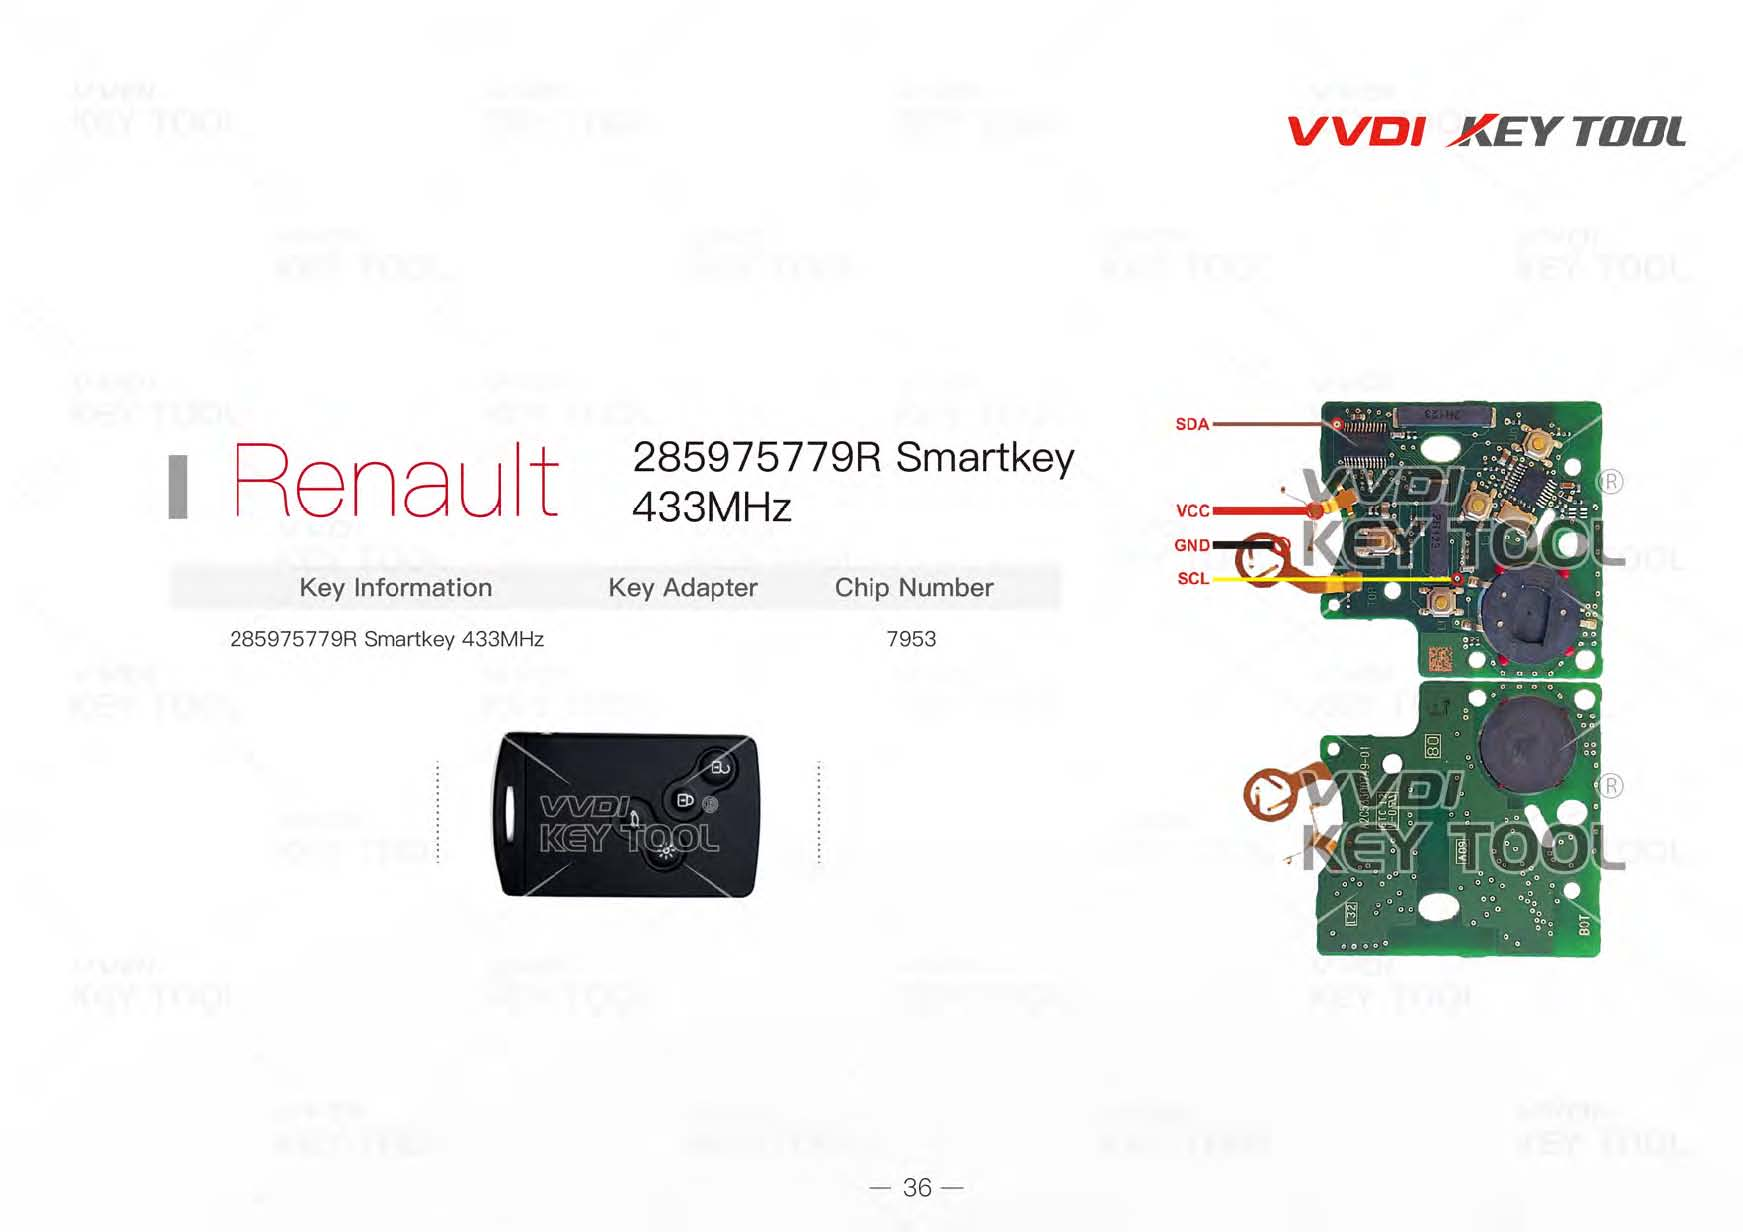 vvdi-key-tool-renew-diagram-36